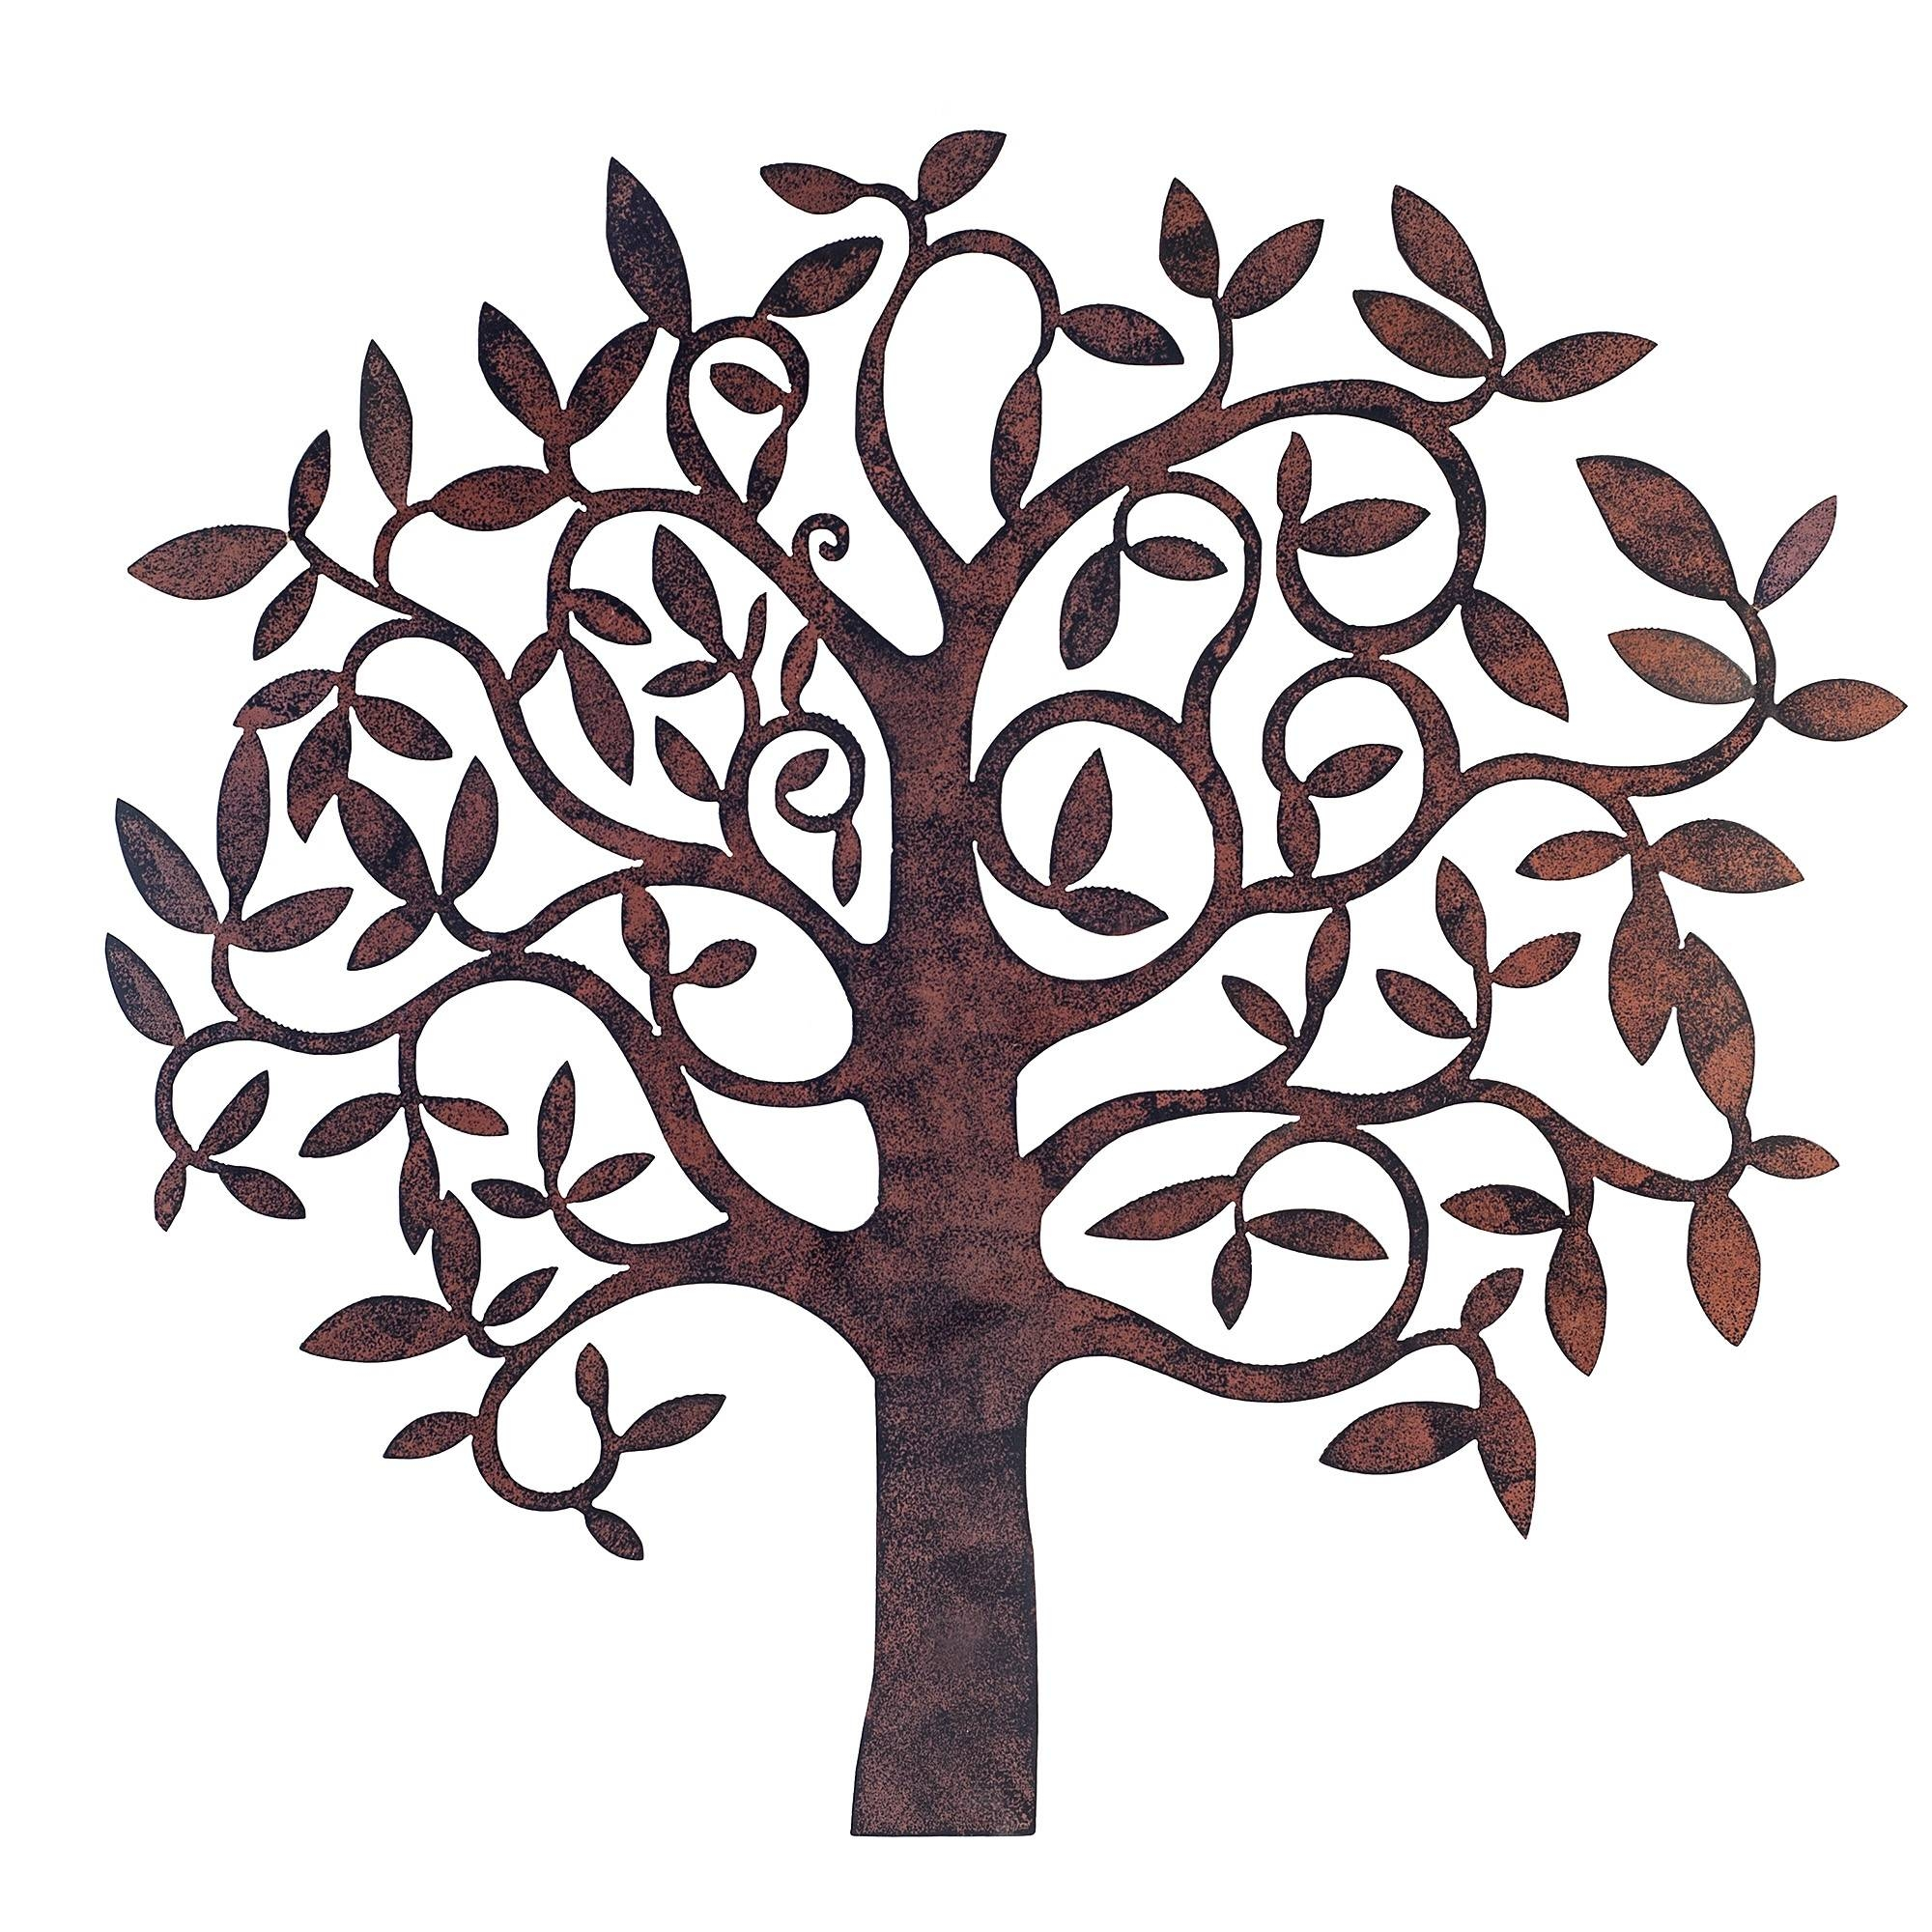 Stupendous Large Metal Tree Wall Decoration 64 Casa Cortes In Newest Large Metal Wall Art For Outdoor (View 7 of 20)